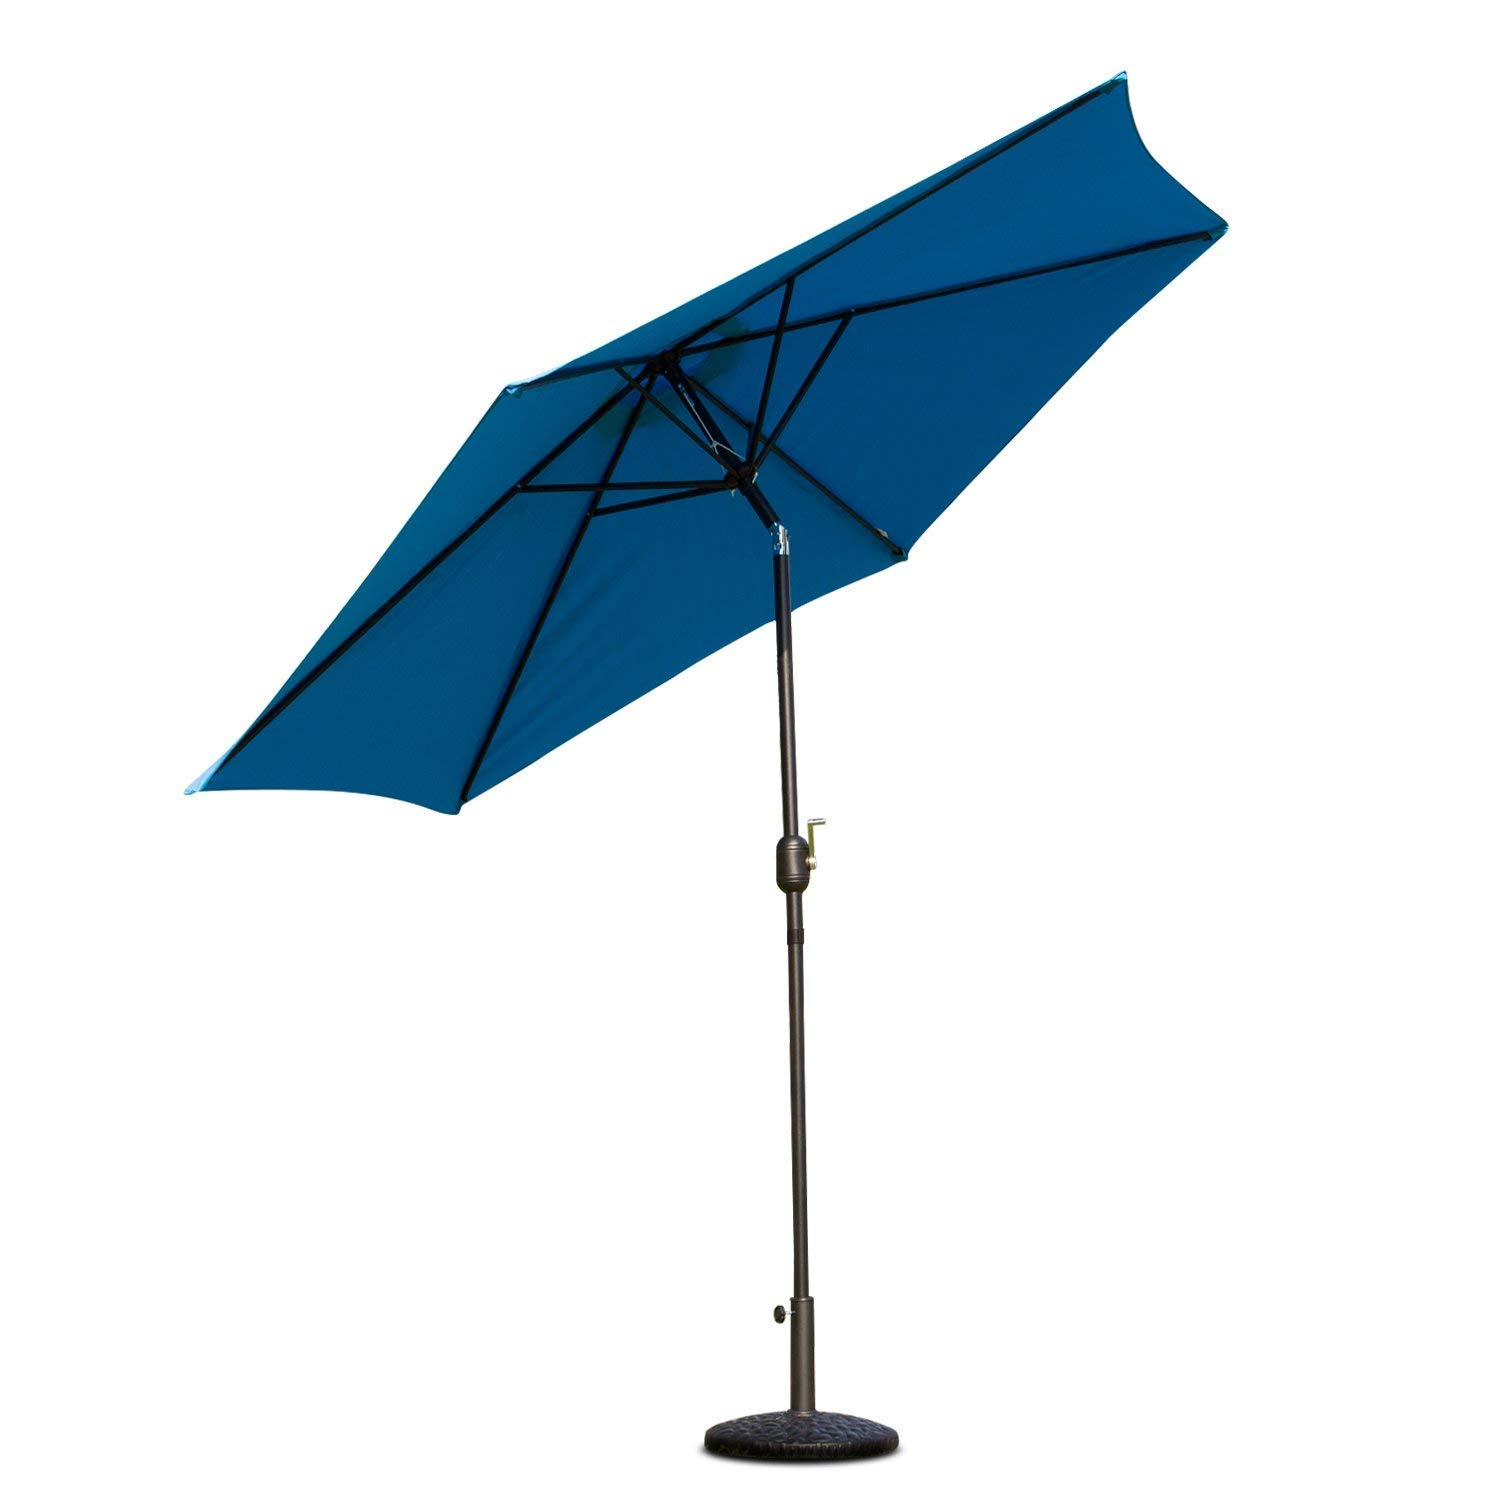 Peach Tree Sunbrella 10FT Market Table Outdoor Patio Umbrella New Outdoor Garden Camping Garden Furniture Parasol Iron Pole with Base&Push Button Tilt Crank Lift Mechanism, Blue